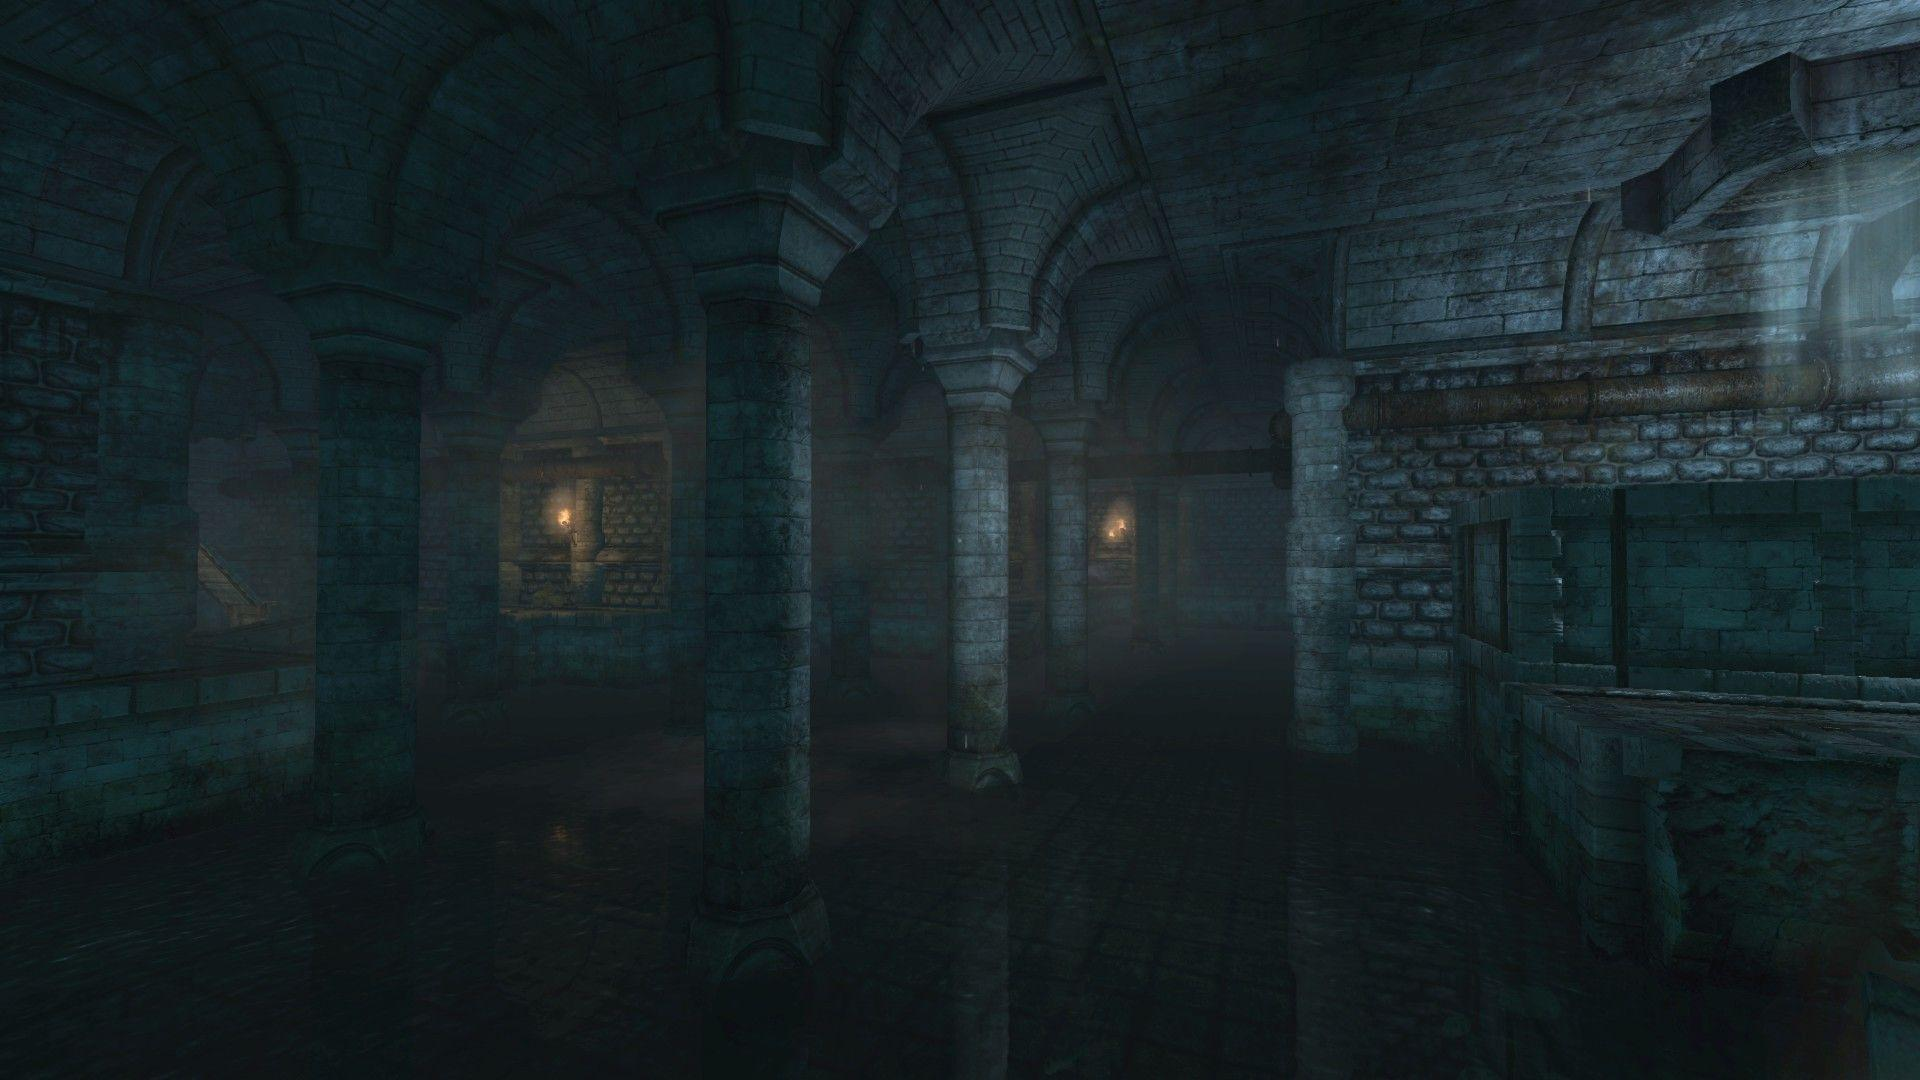 Free Download Amnesia The Dark Descent Wallpapers 1920x1080 For